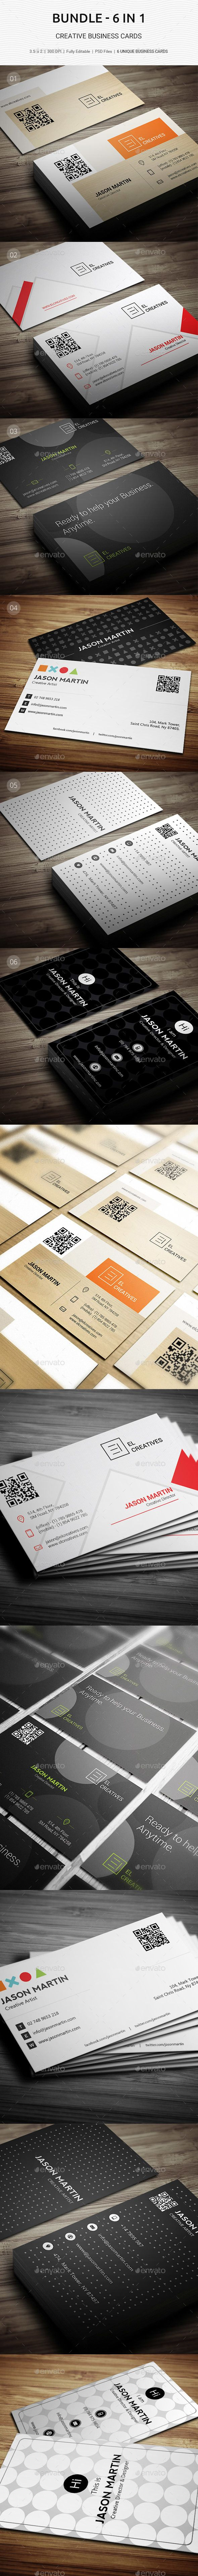 2854 besten Business Card Template & Design Bilder auf Pinterest